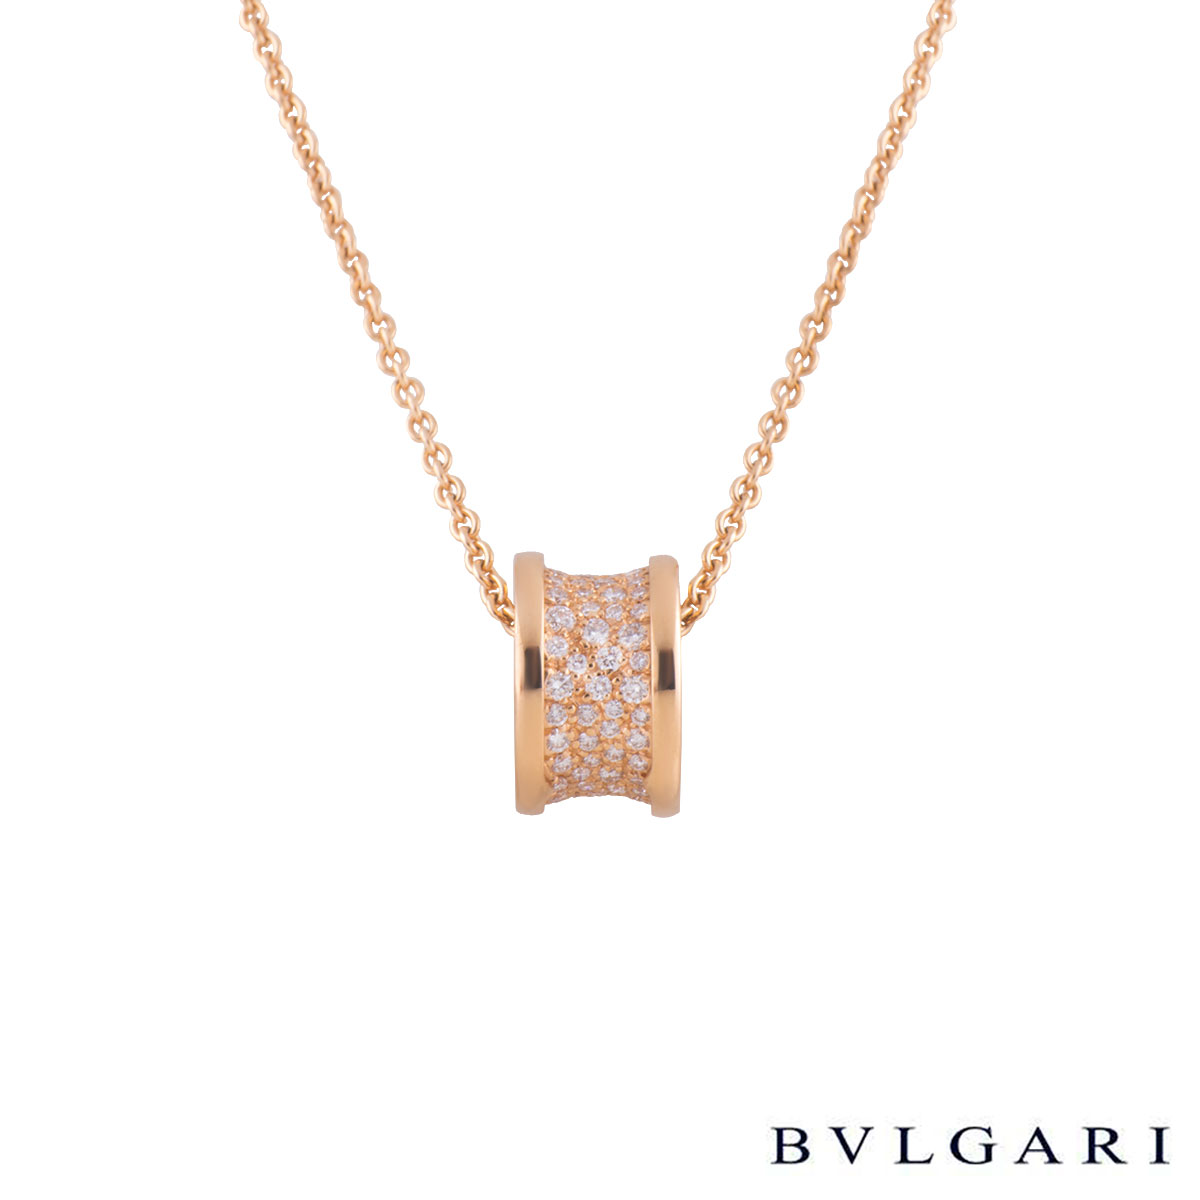 Bvlgari Bvlgari Rose Gold Diamond Pendant CL856300